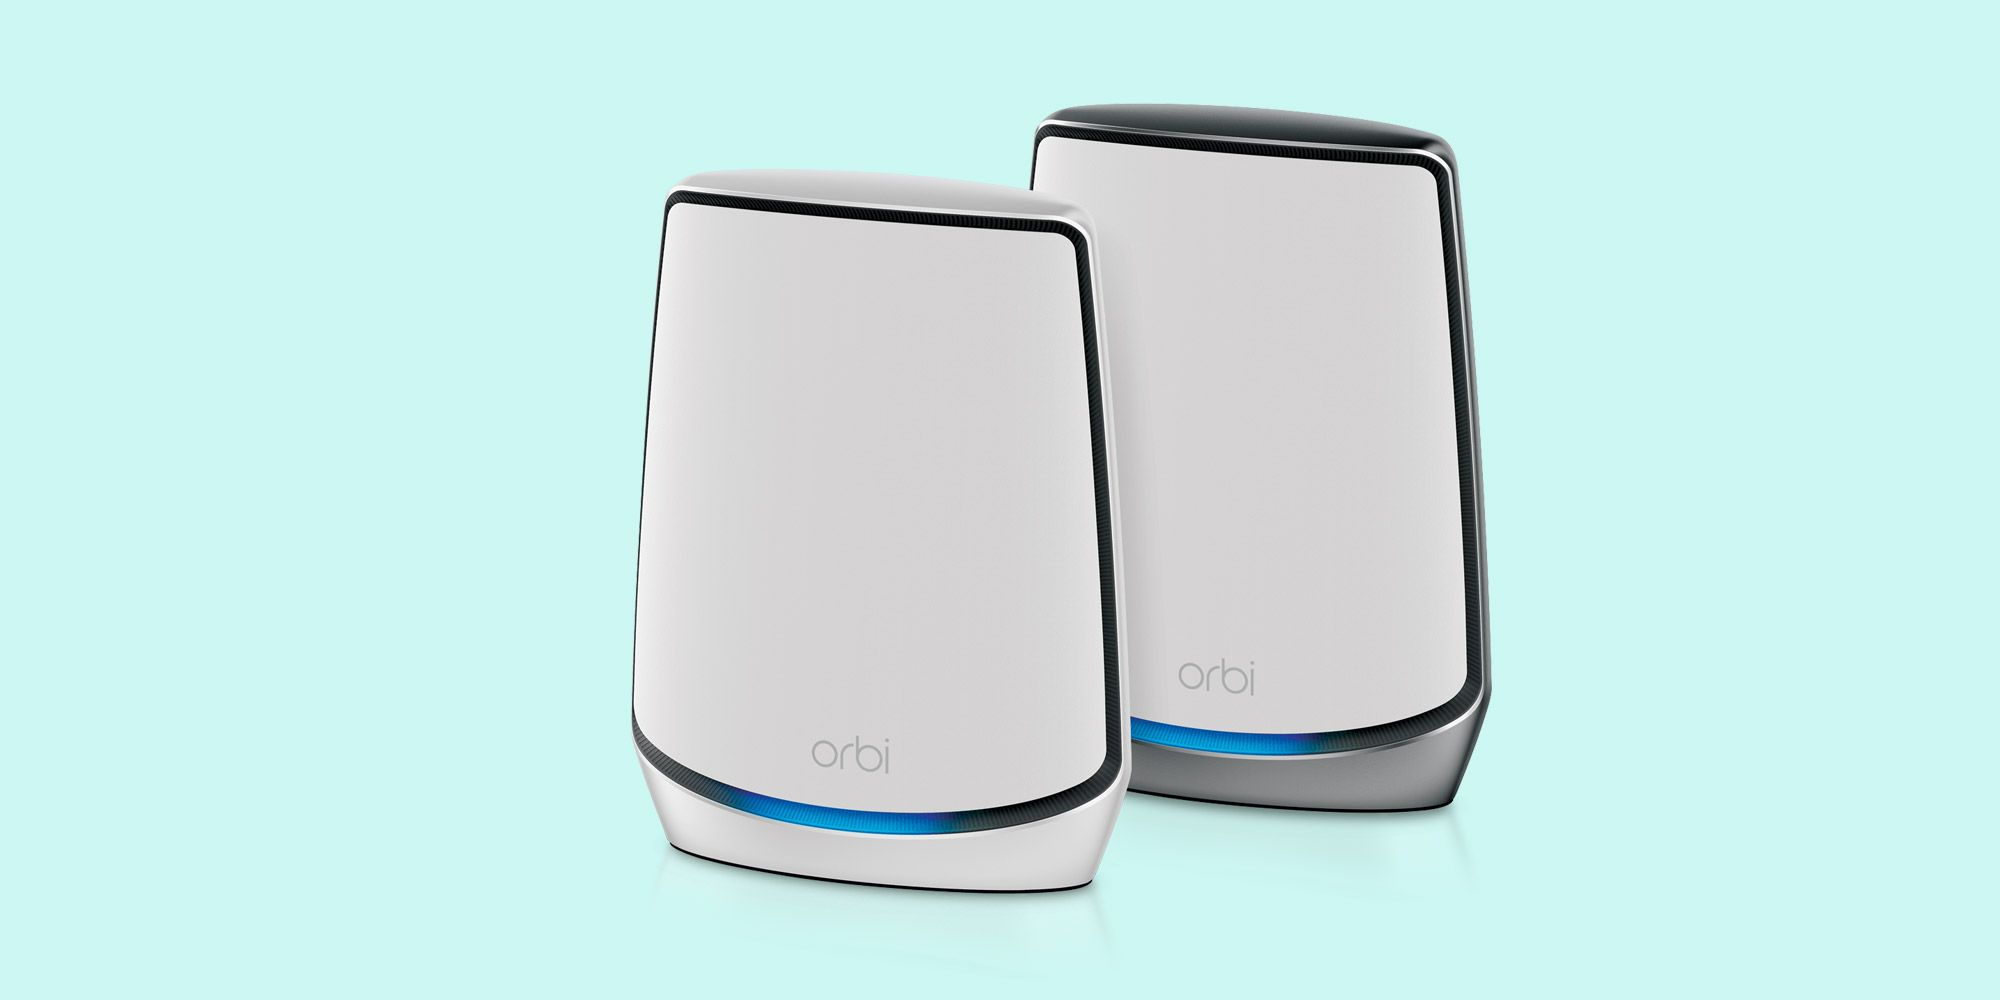 Netgear Orbi WiFi RBK852 Review